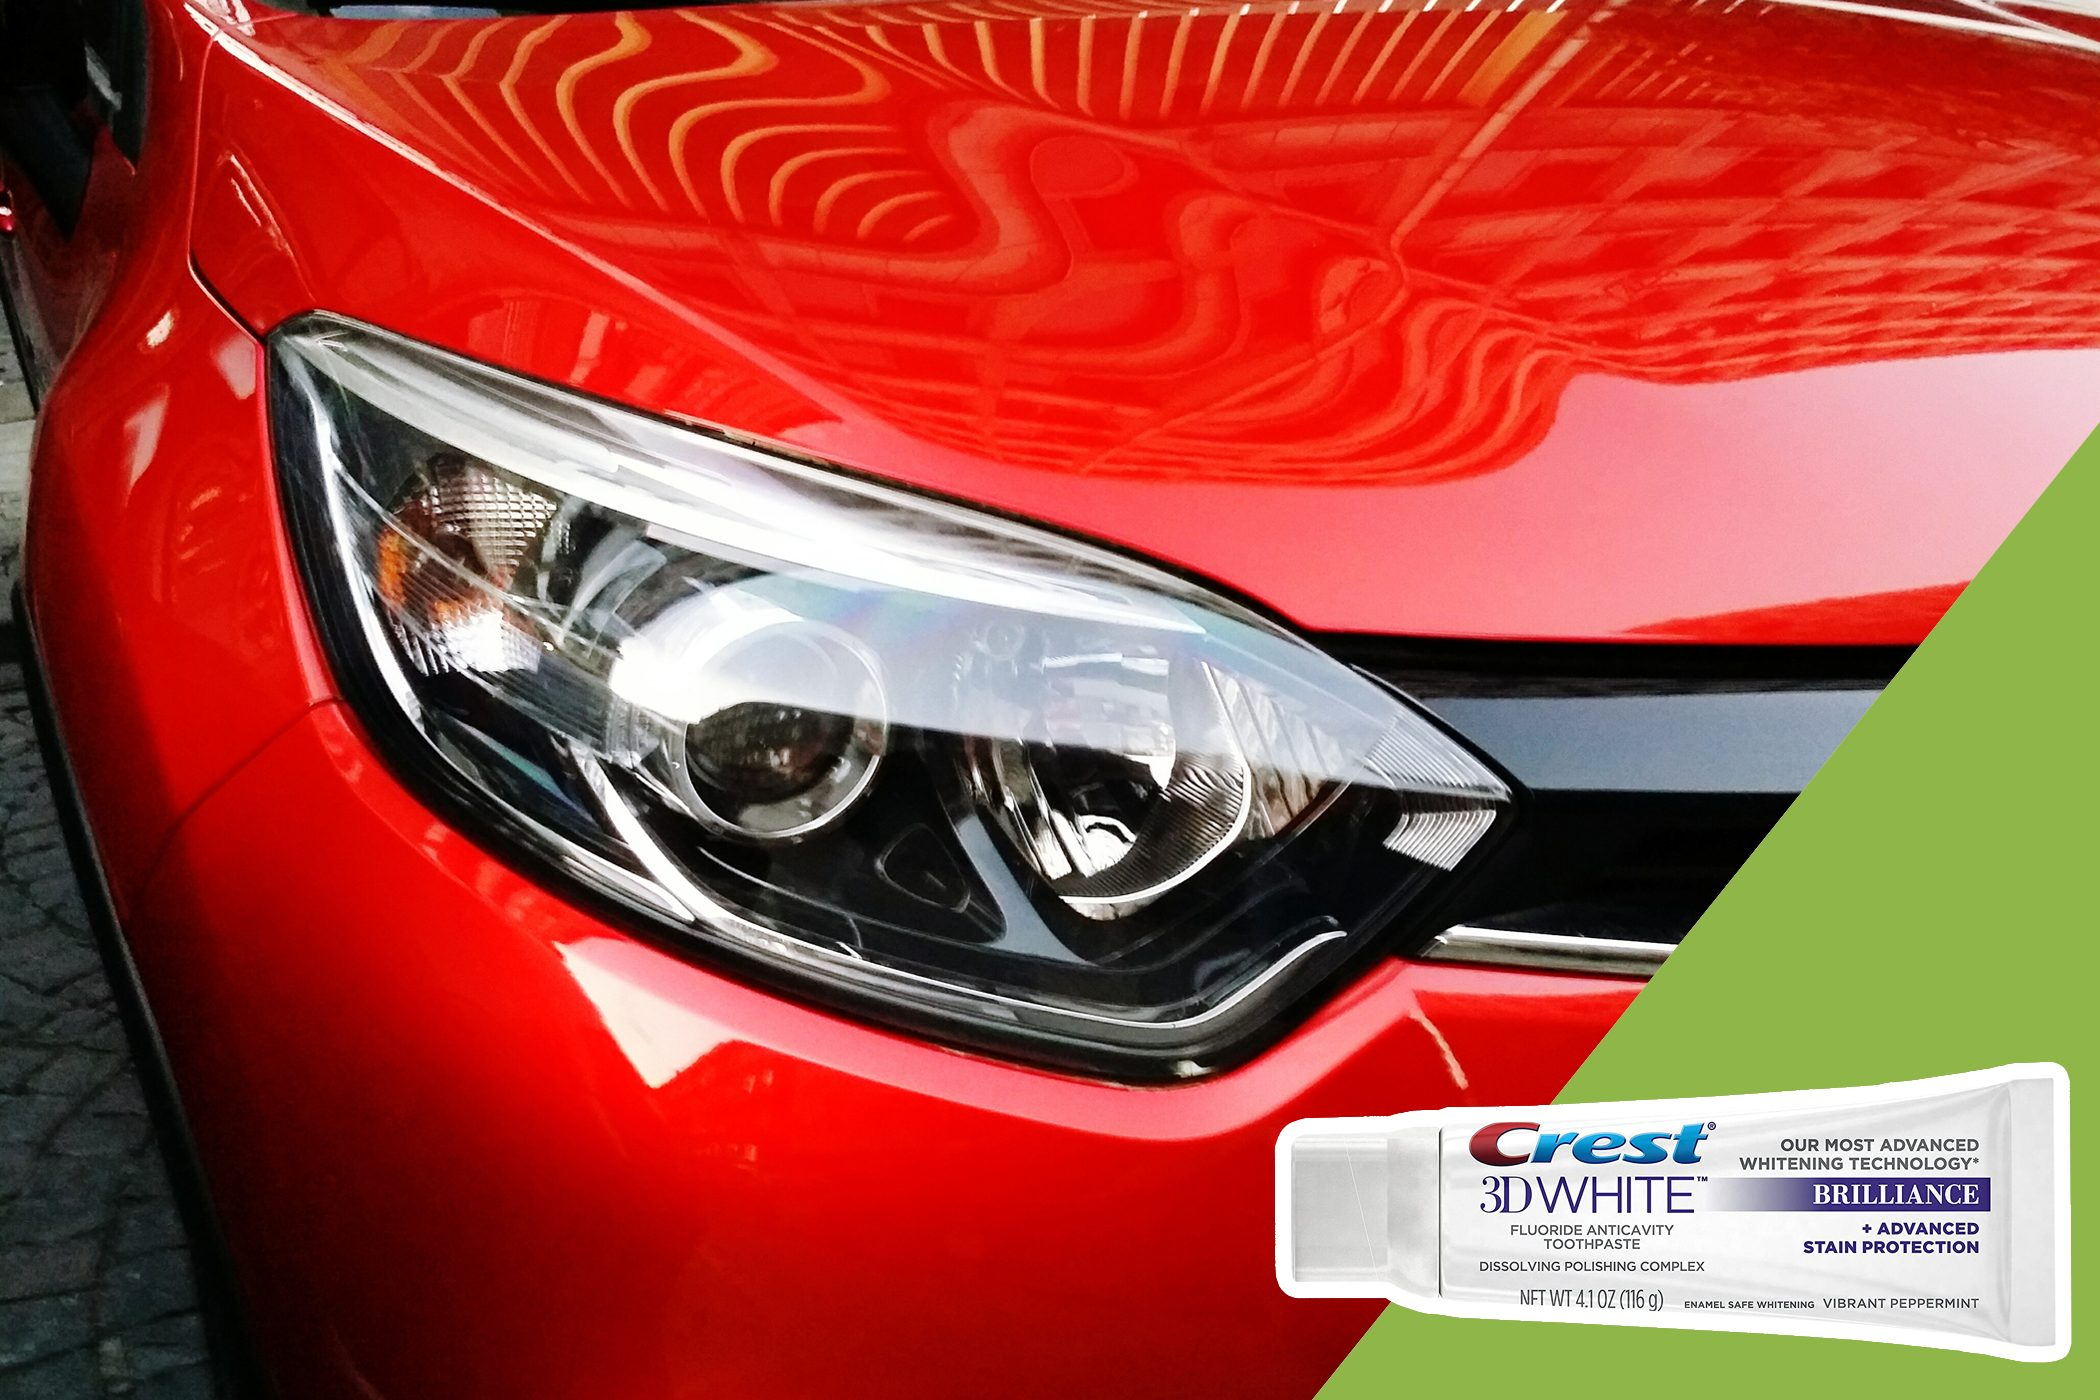 clean headlights with inset of toothpaste